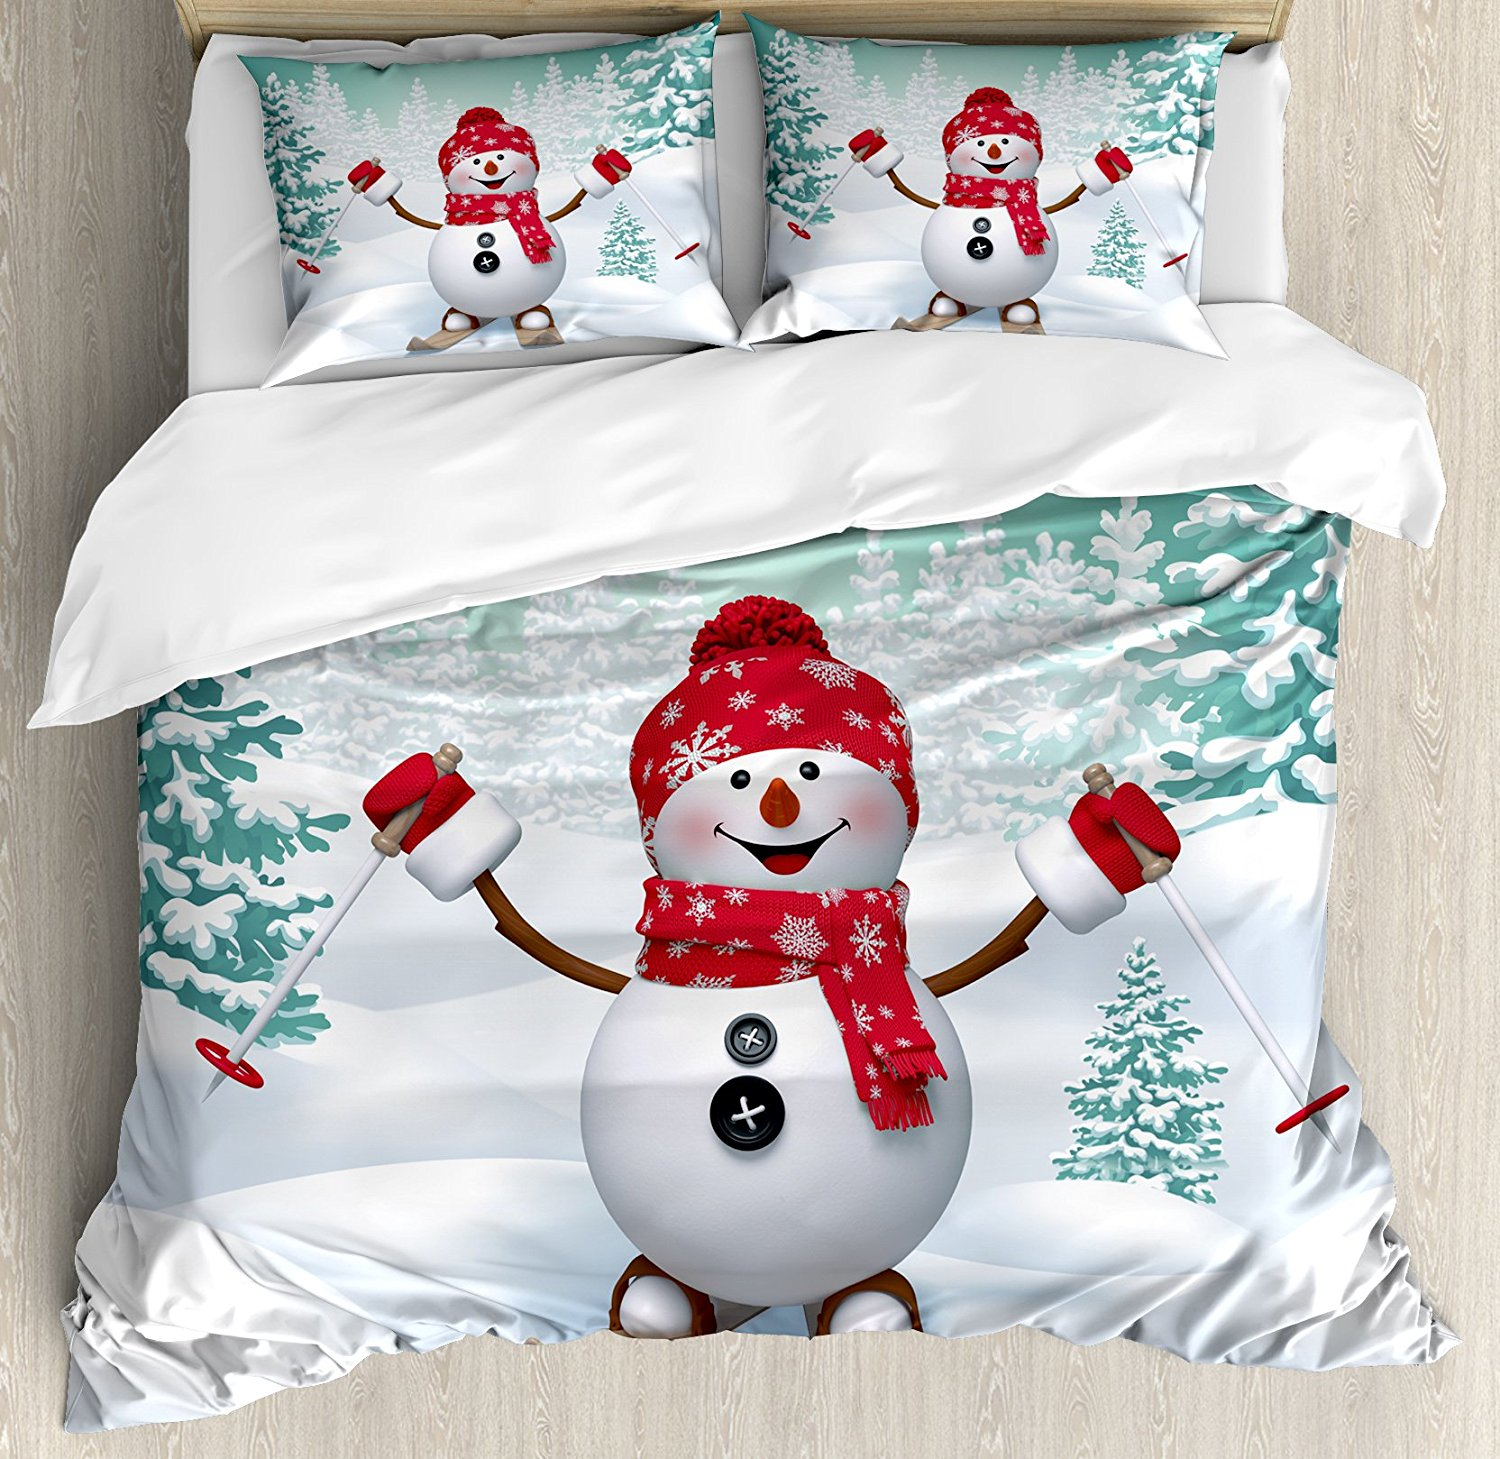 Christmas Duvet Cover Set Size Snow Covered Mountain with Fir Trees and Skiing Snowman Fun Holiday Activity